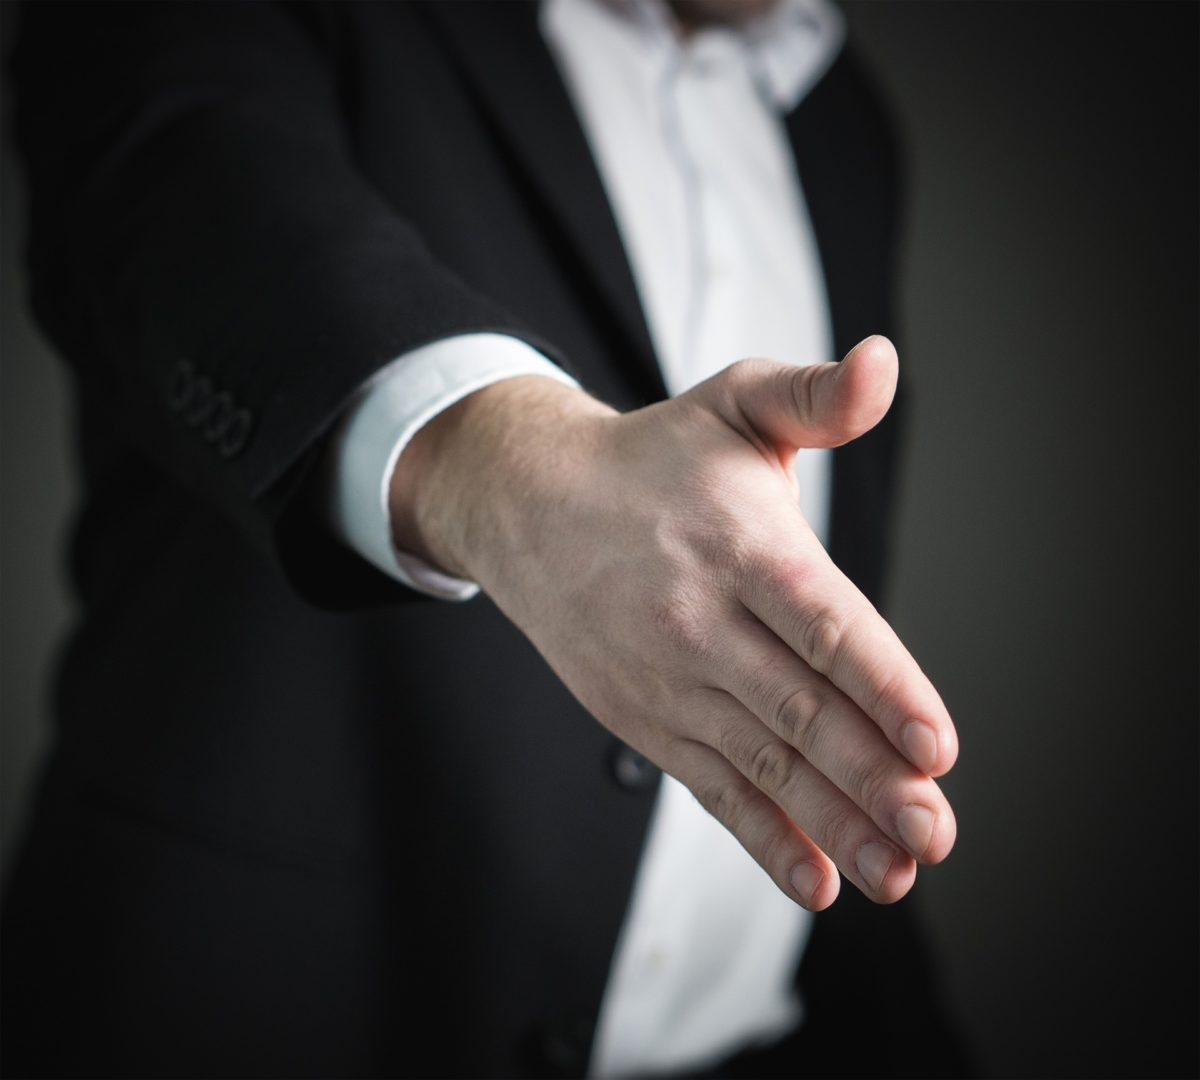 photo of a man extending his hand for a handshake